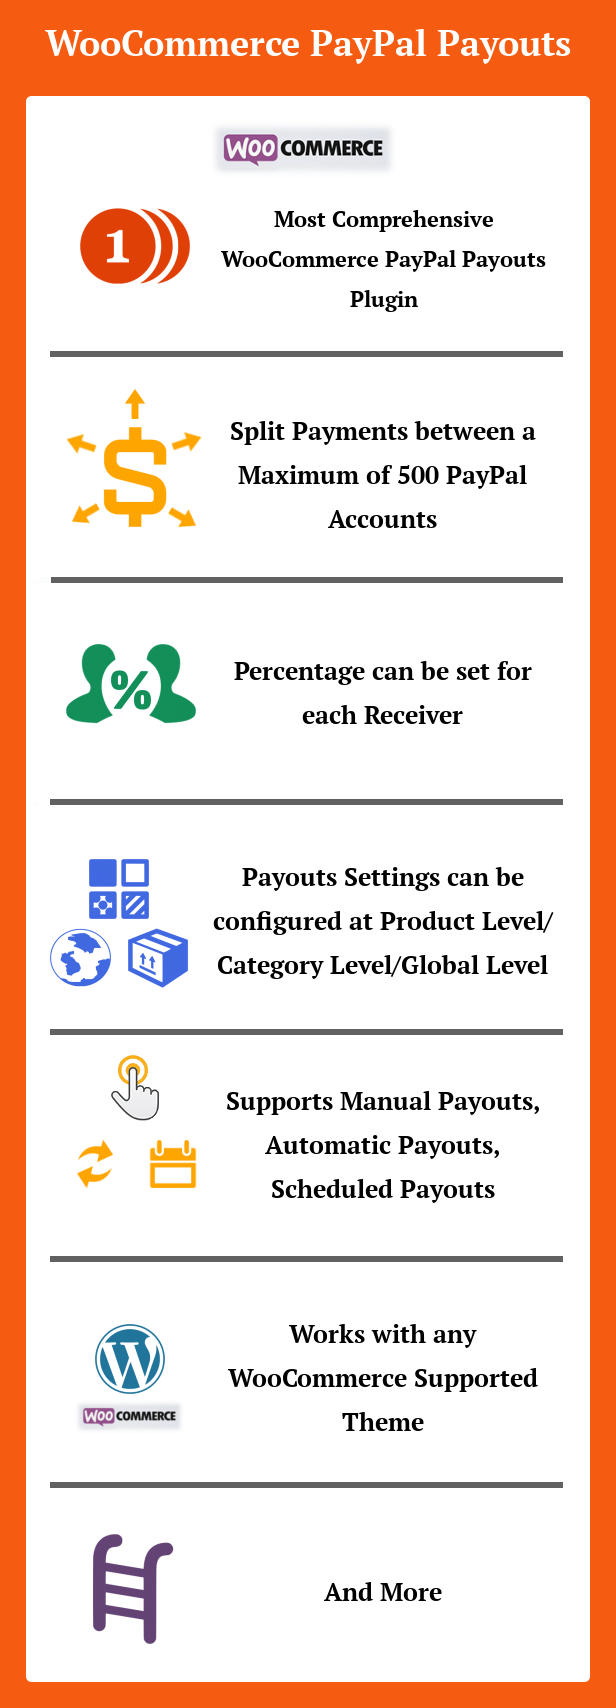 woocommerce_paypal_payouts_whyinfographics-1